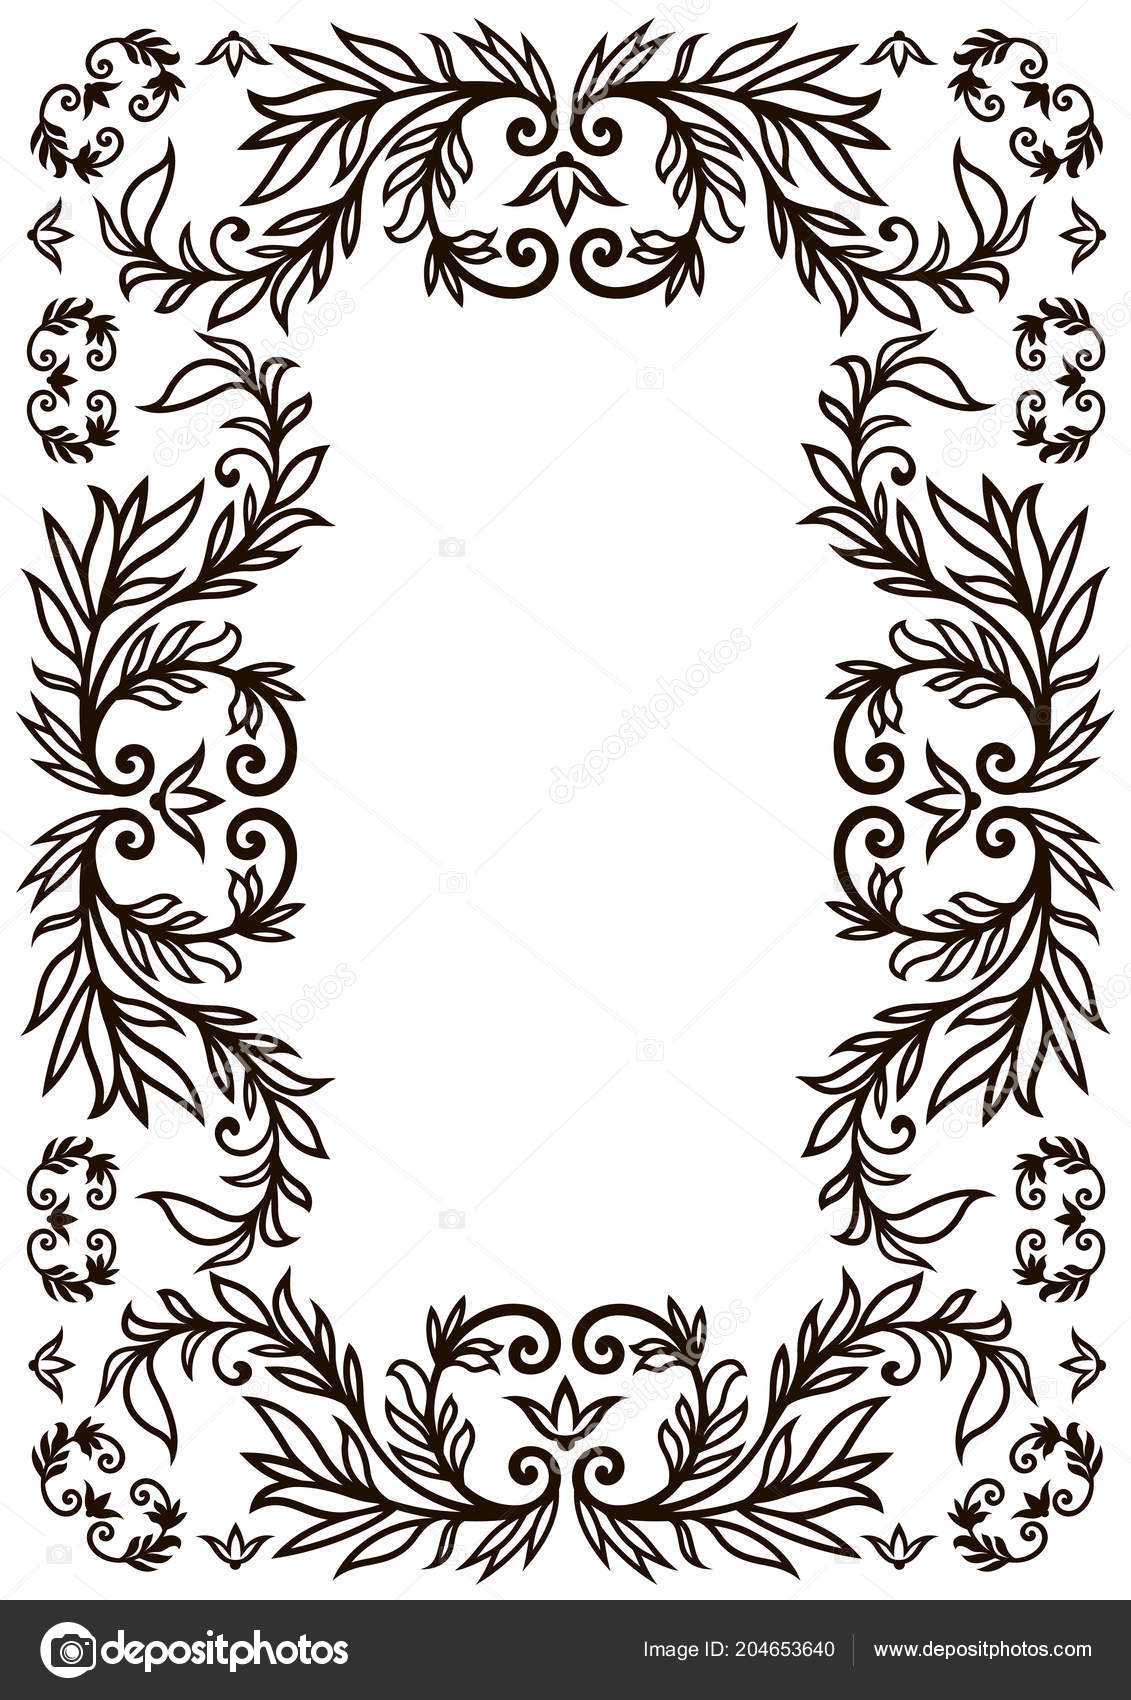 Clipart Border Design Black And White